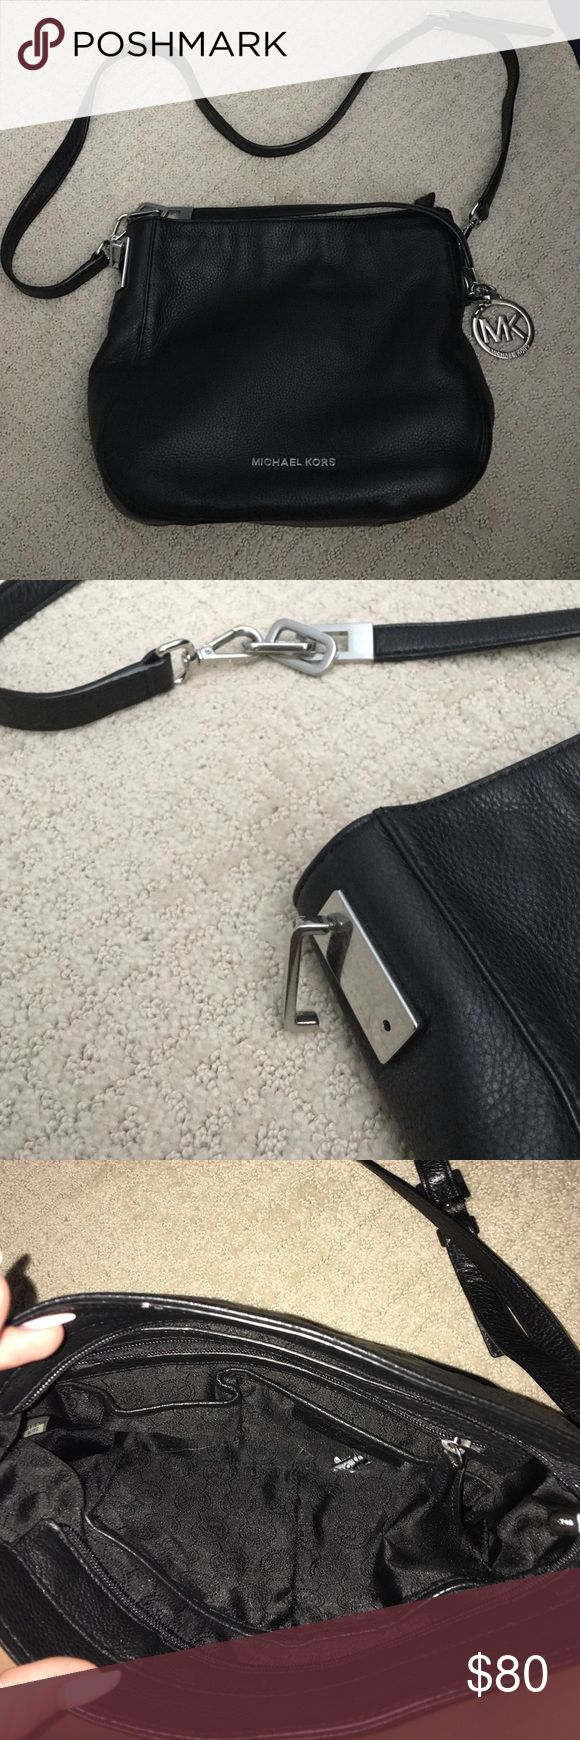 Michael Kors Purse This bag is super cute and in perfect condition EXCEPT that the hook that hold the strap on has fallen off and I do not know how to fix it. Michael Kors Bags Crossbody Bags